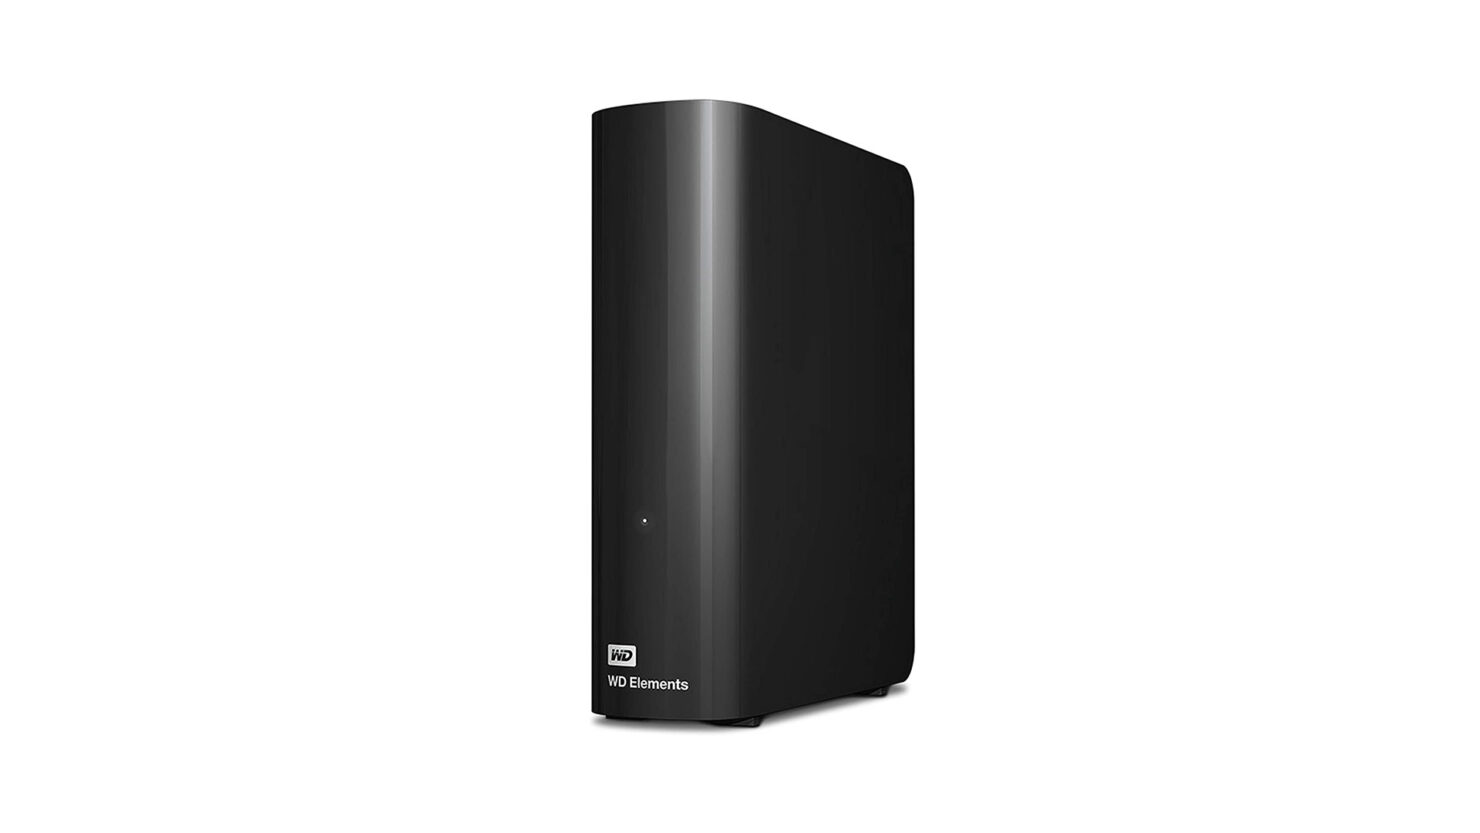 Store Heaps of Files With WD Elements 18TB External Hard Drive, Compatible With PC and Mac, Now $110 Off